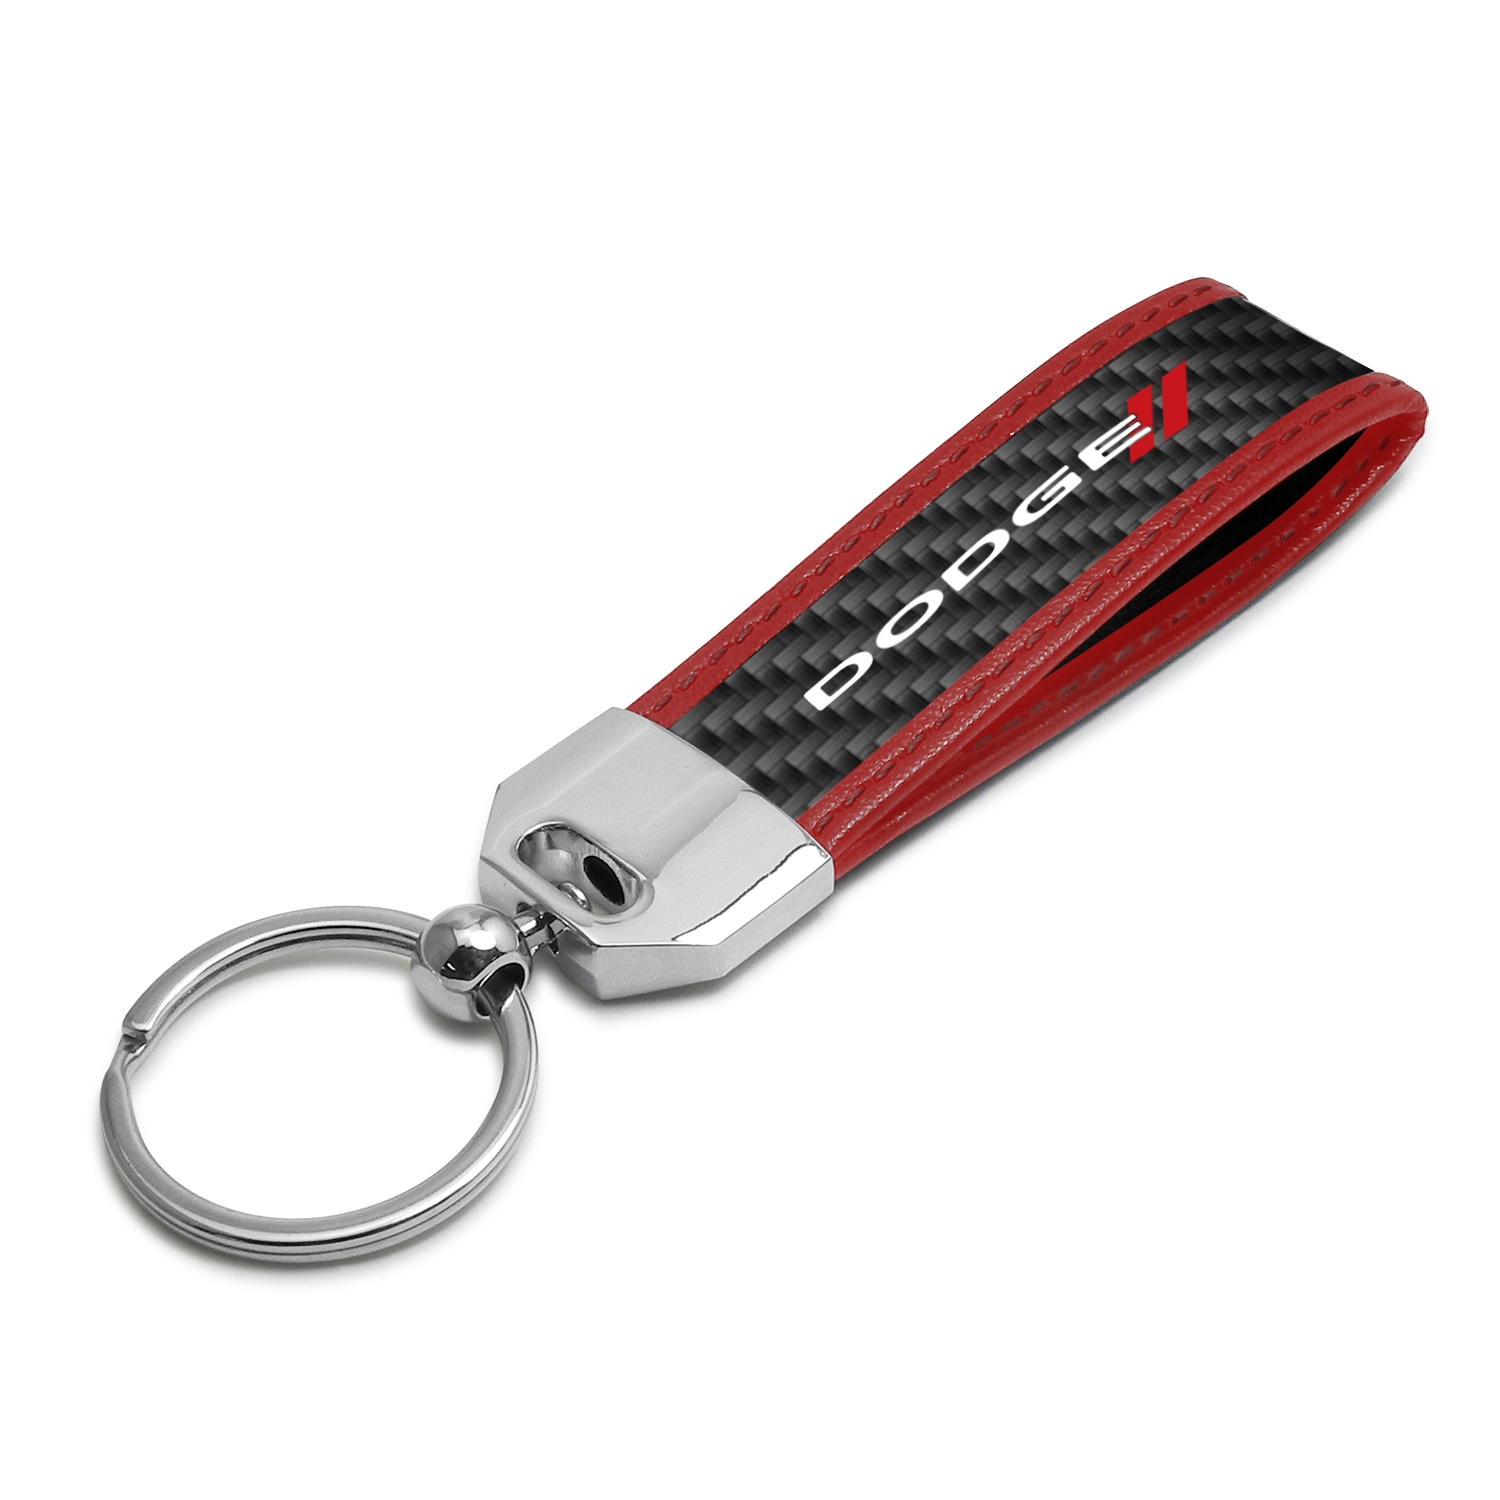 Dodge Real Carbon Fiber Strap Key Chain with Red Edge